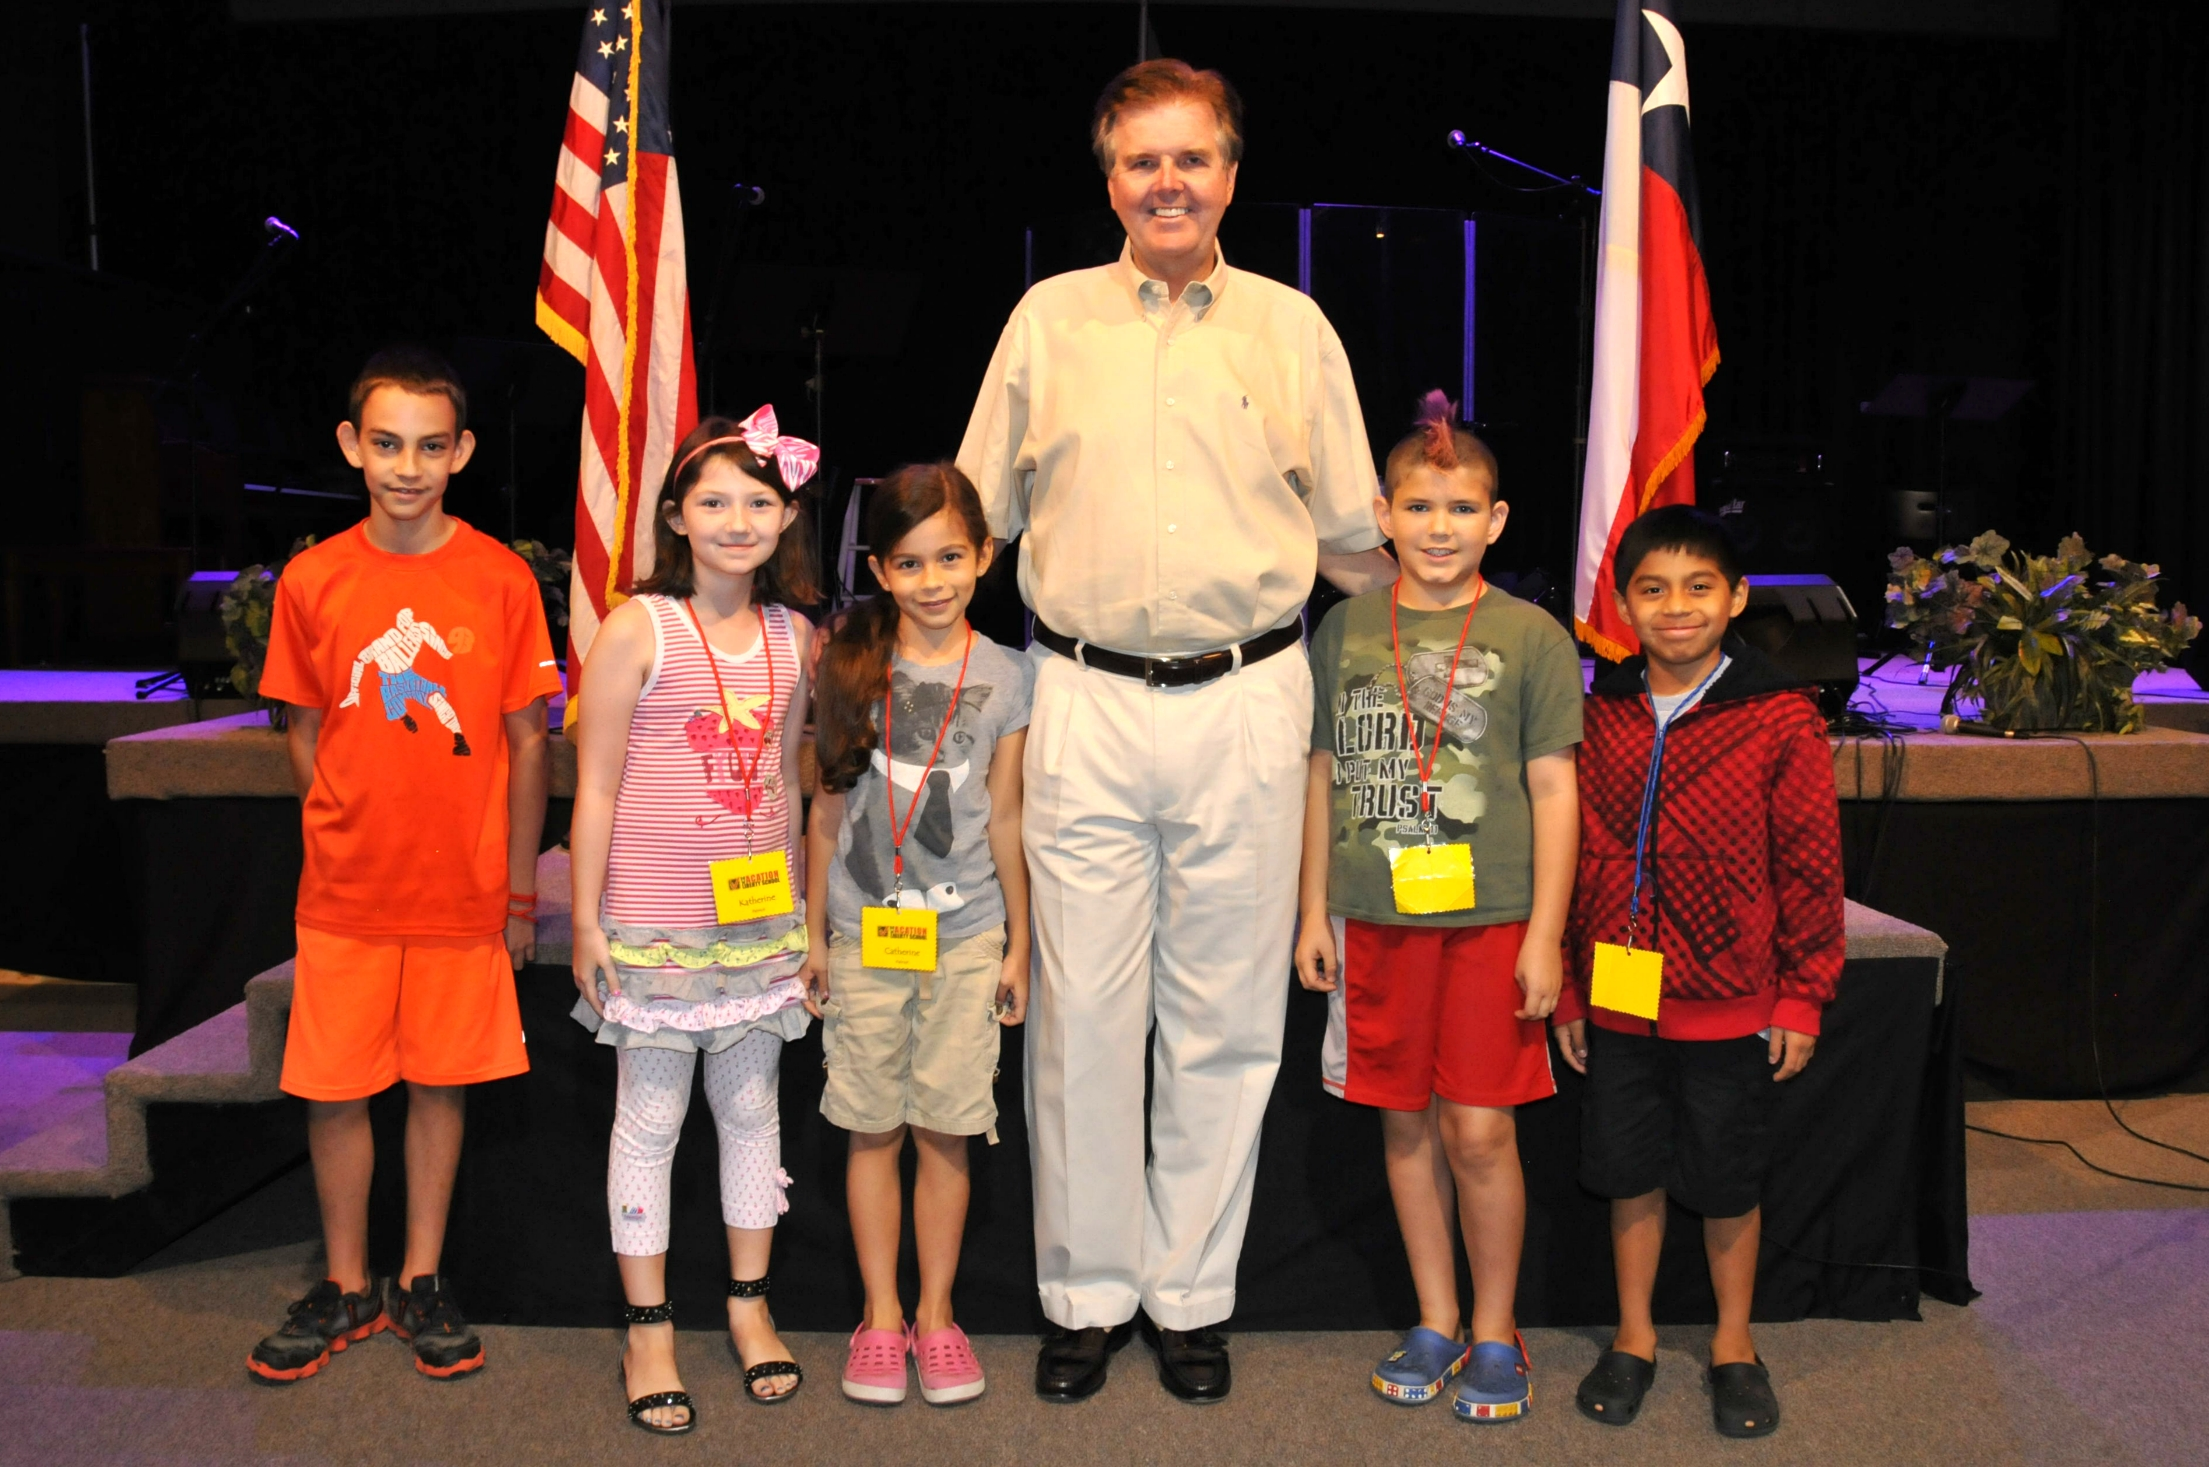 Dan Patrick with a group of campers at our annual Vacation Liberty School.